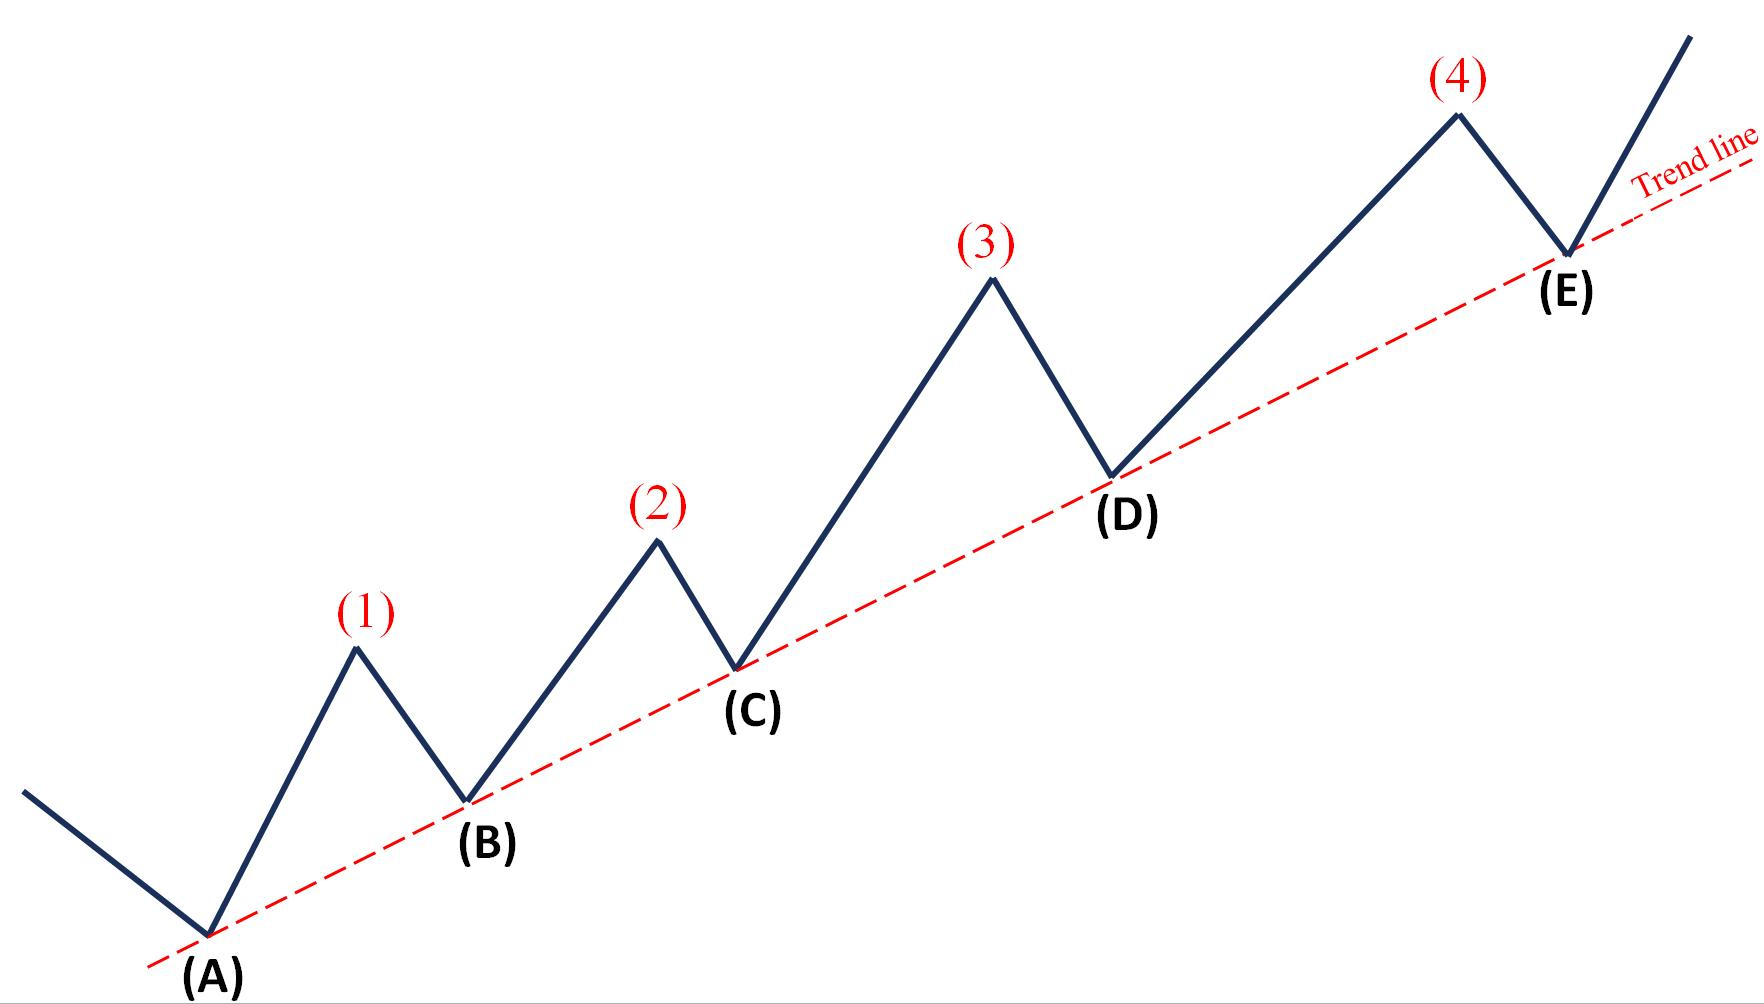 What is the trendline in an upward trend?